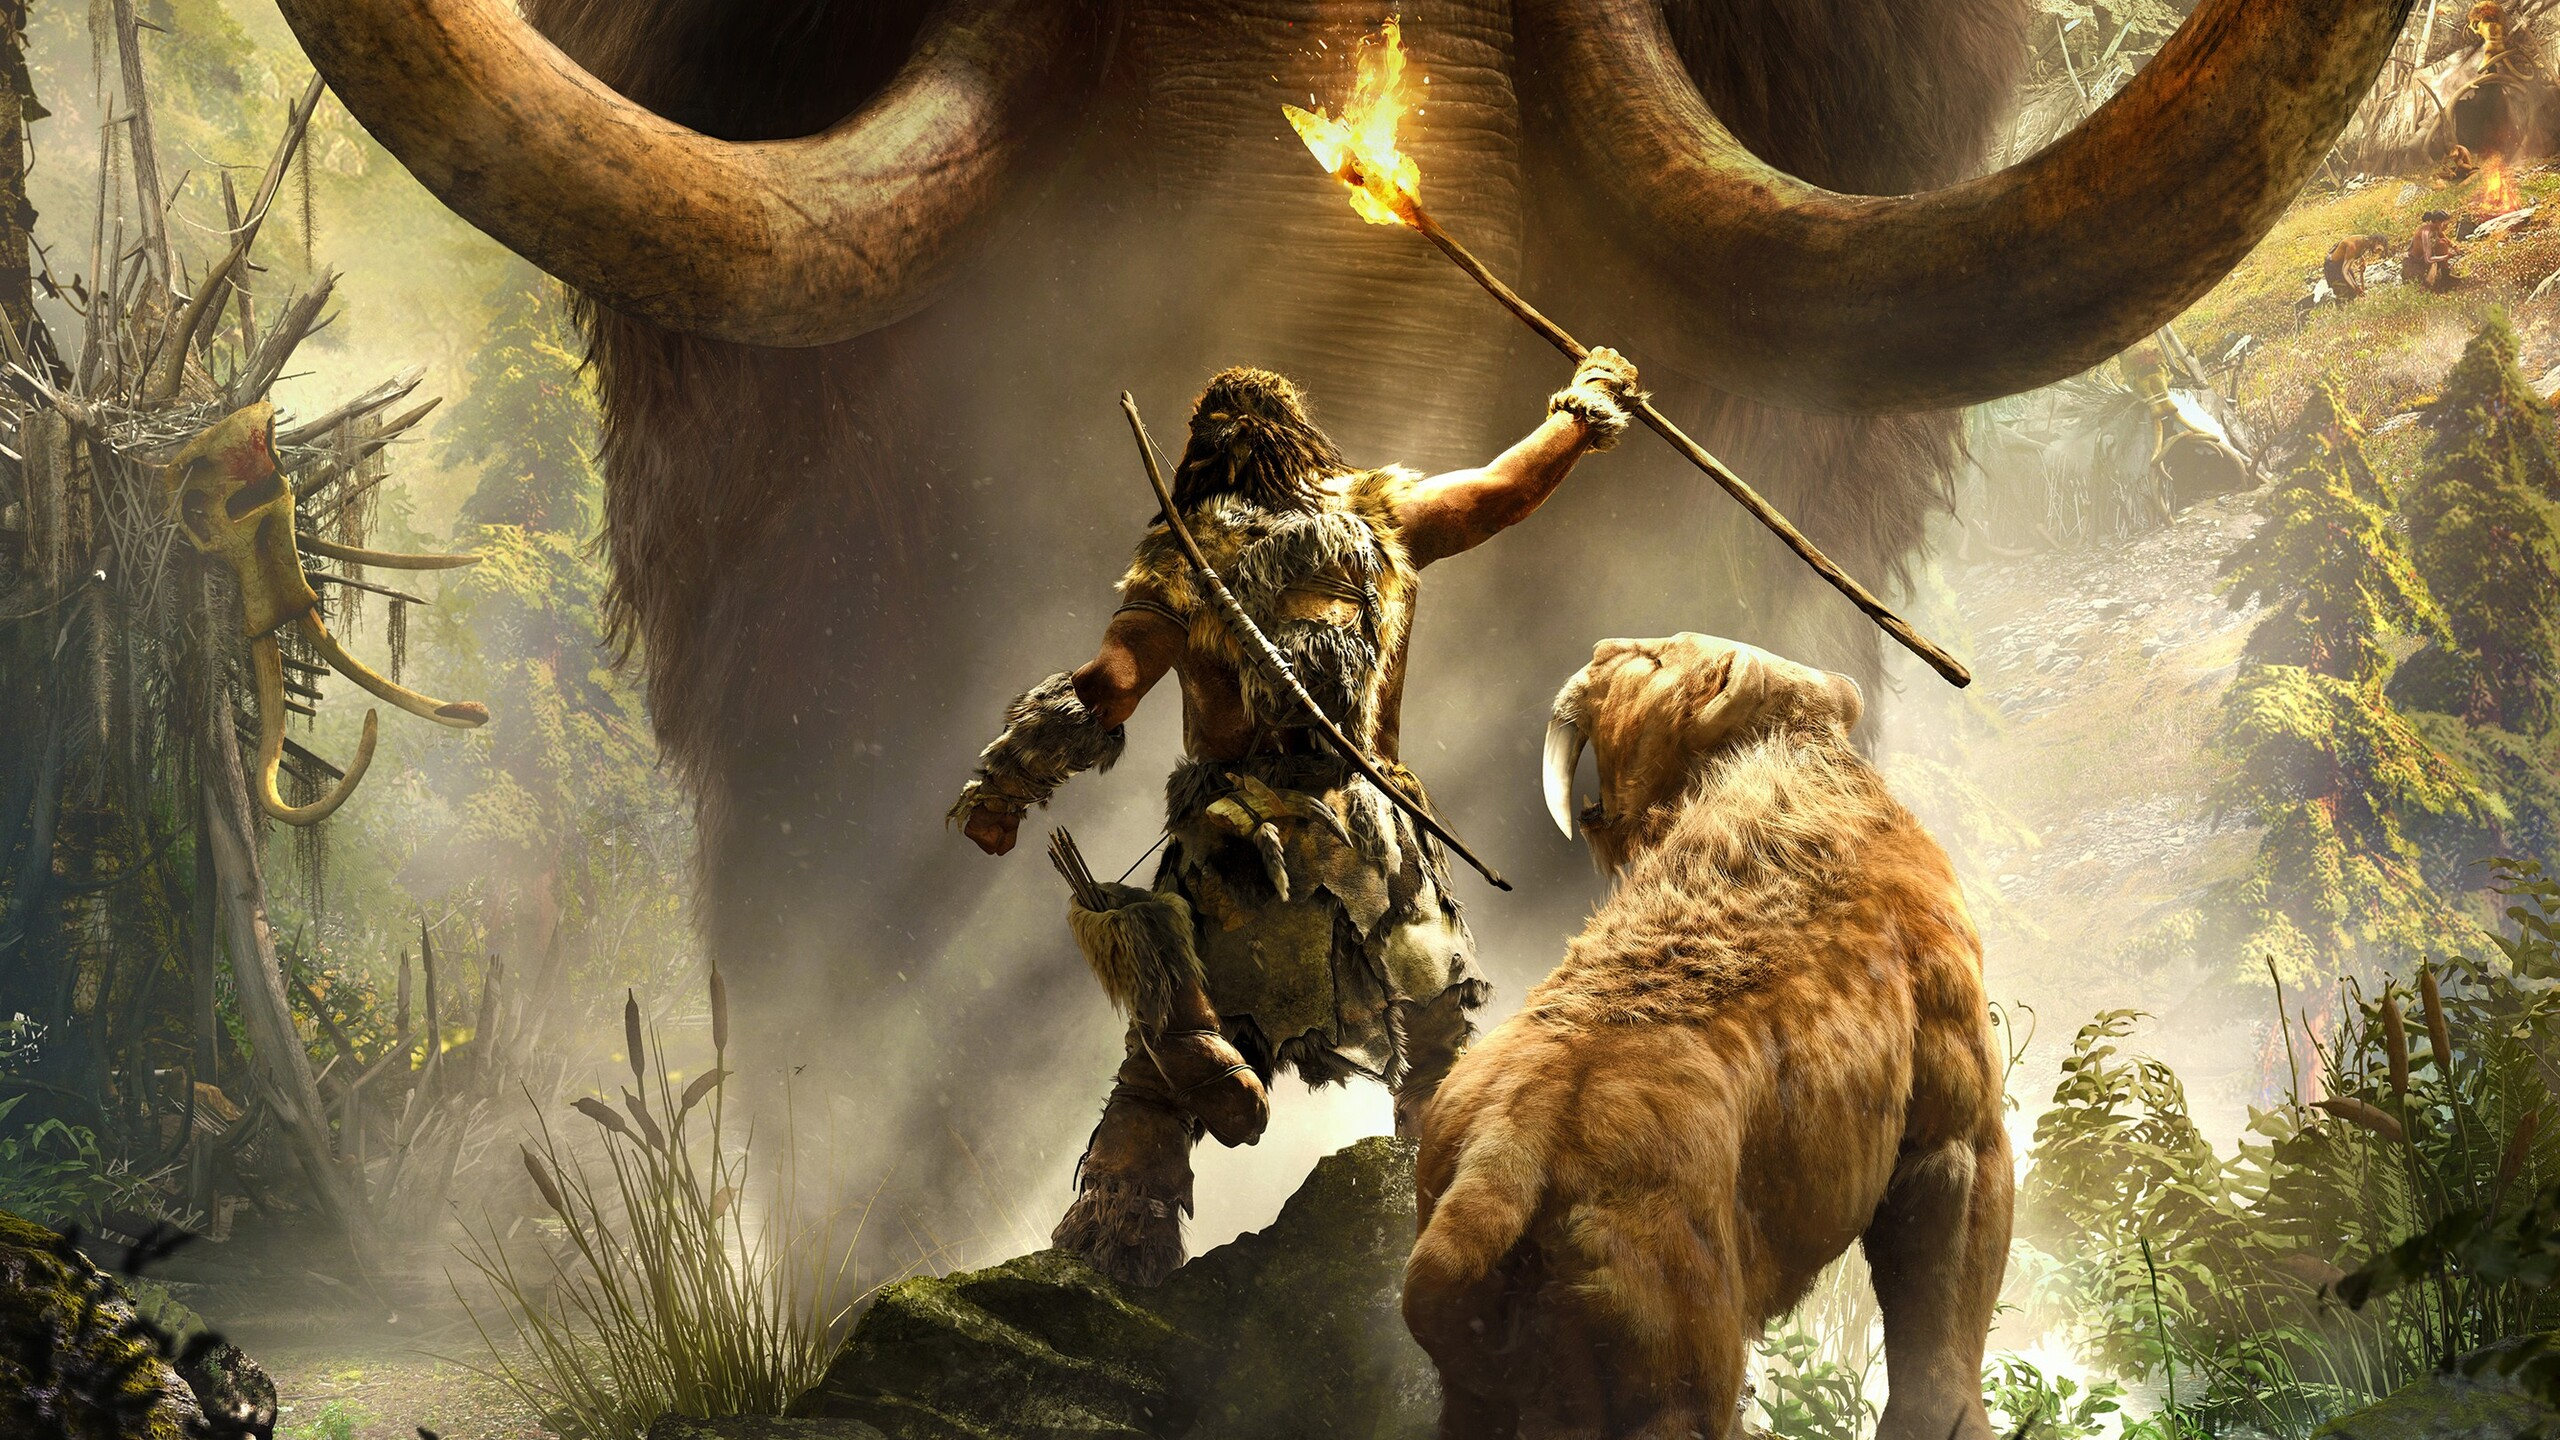 Far Cry Primal Wallpaper: 2560x1440 Far Cry Primal 1440P Resolution HD 4k Wallpapers